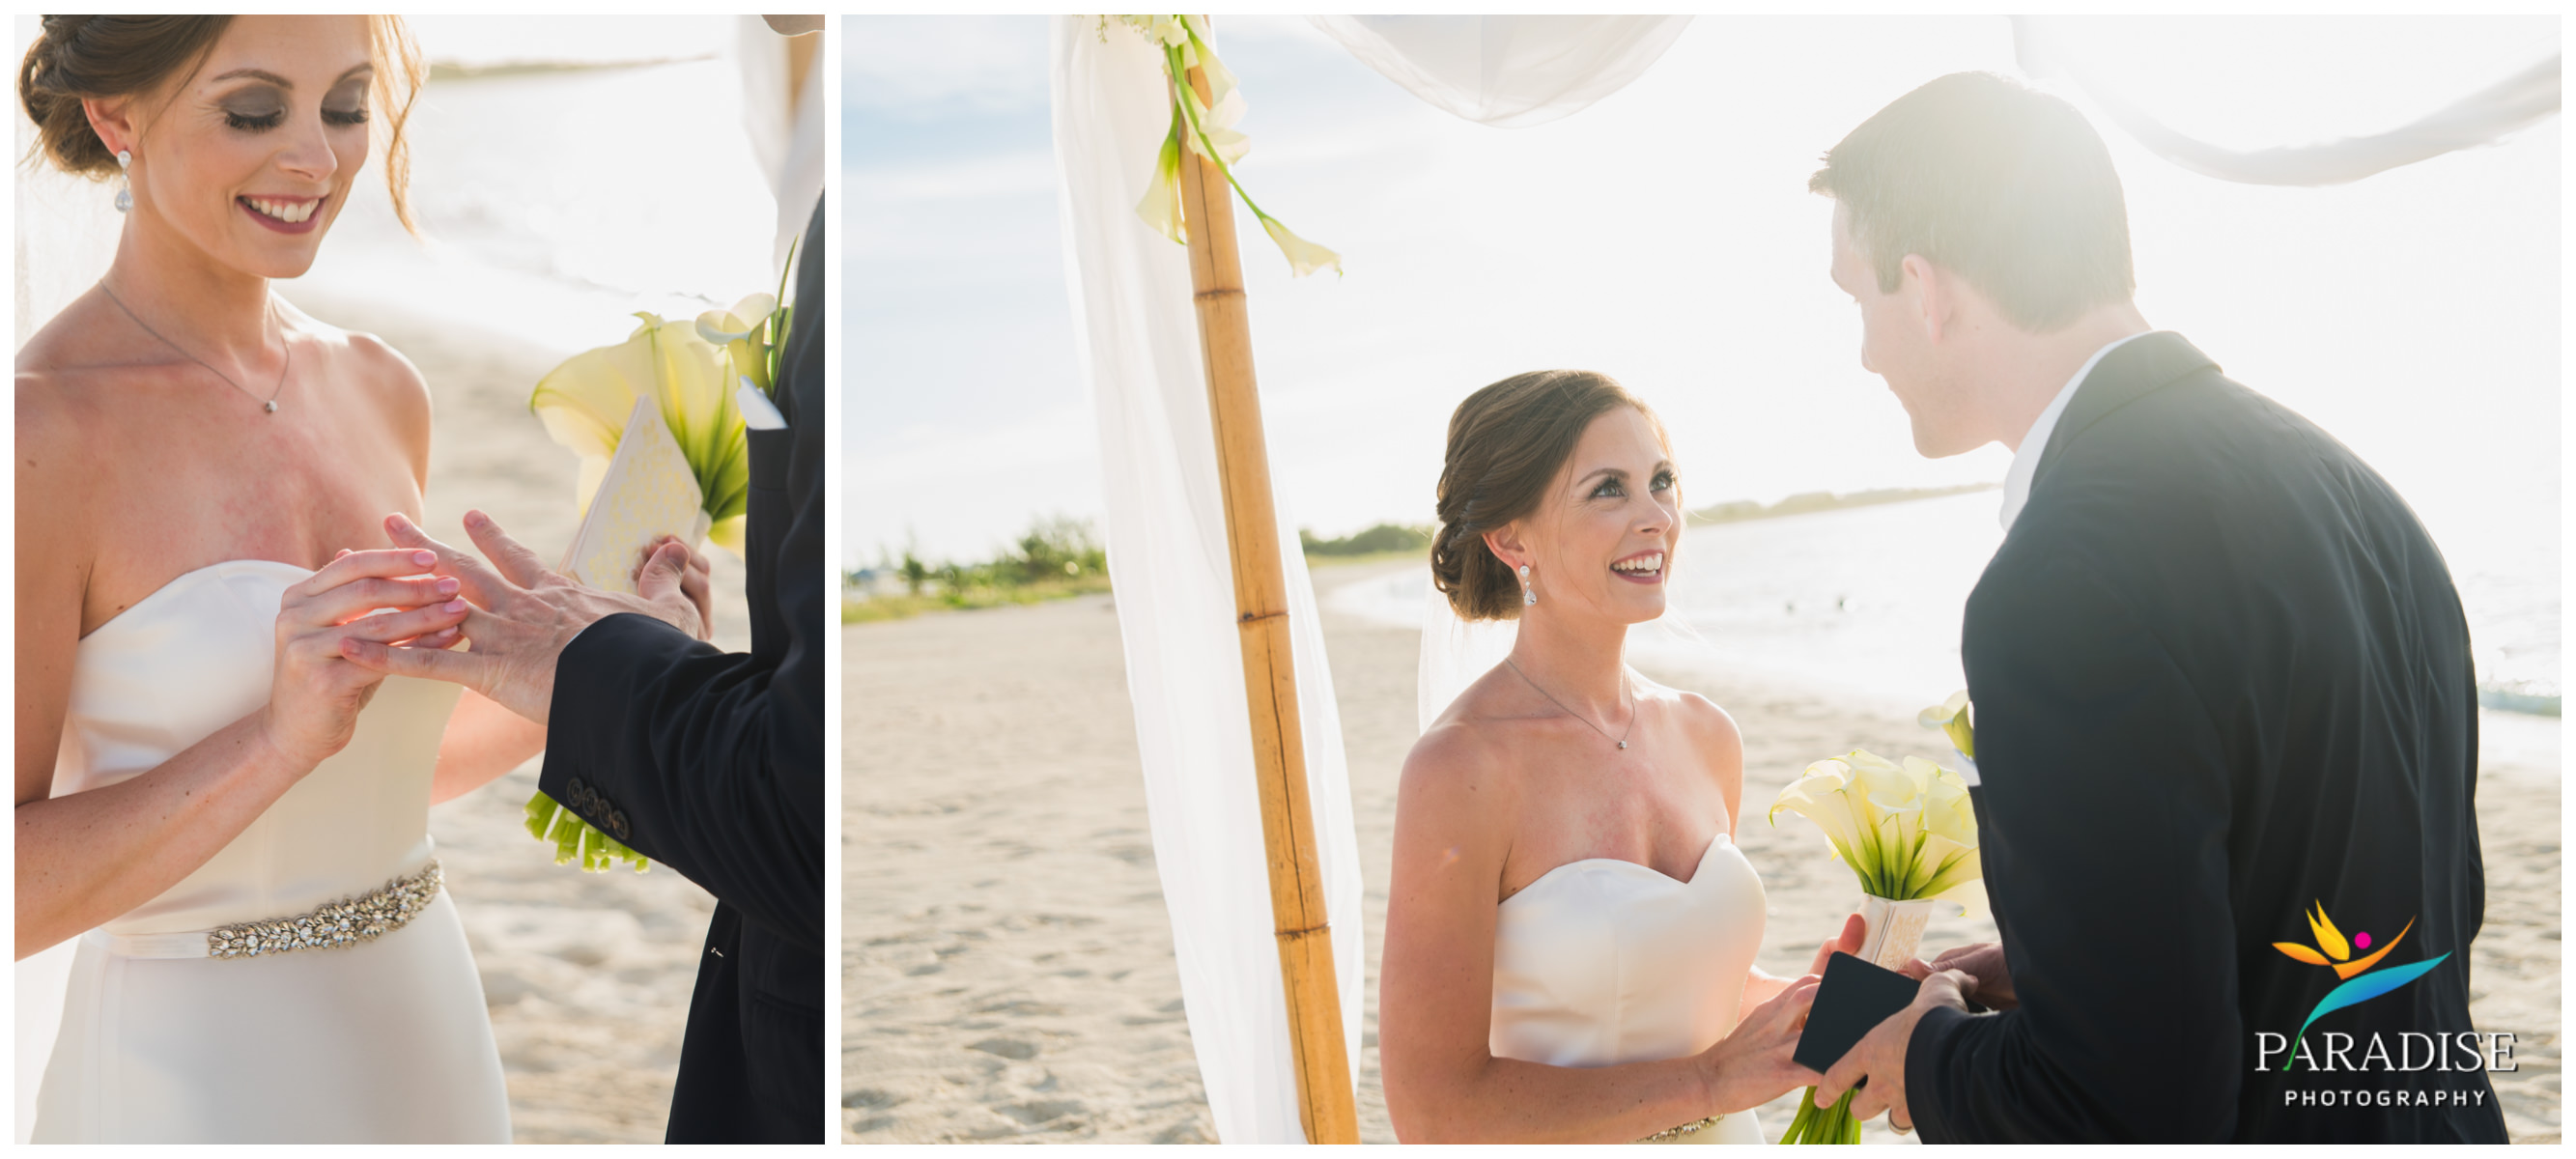 012-turks-and-caicos-destination-wedding-beach-caribbean-photography-photographer-pic-pictures-bride-groom-grace-bay-gansevoort-elopement